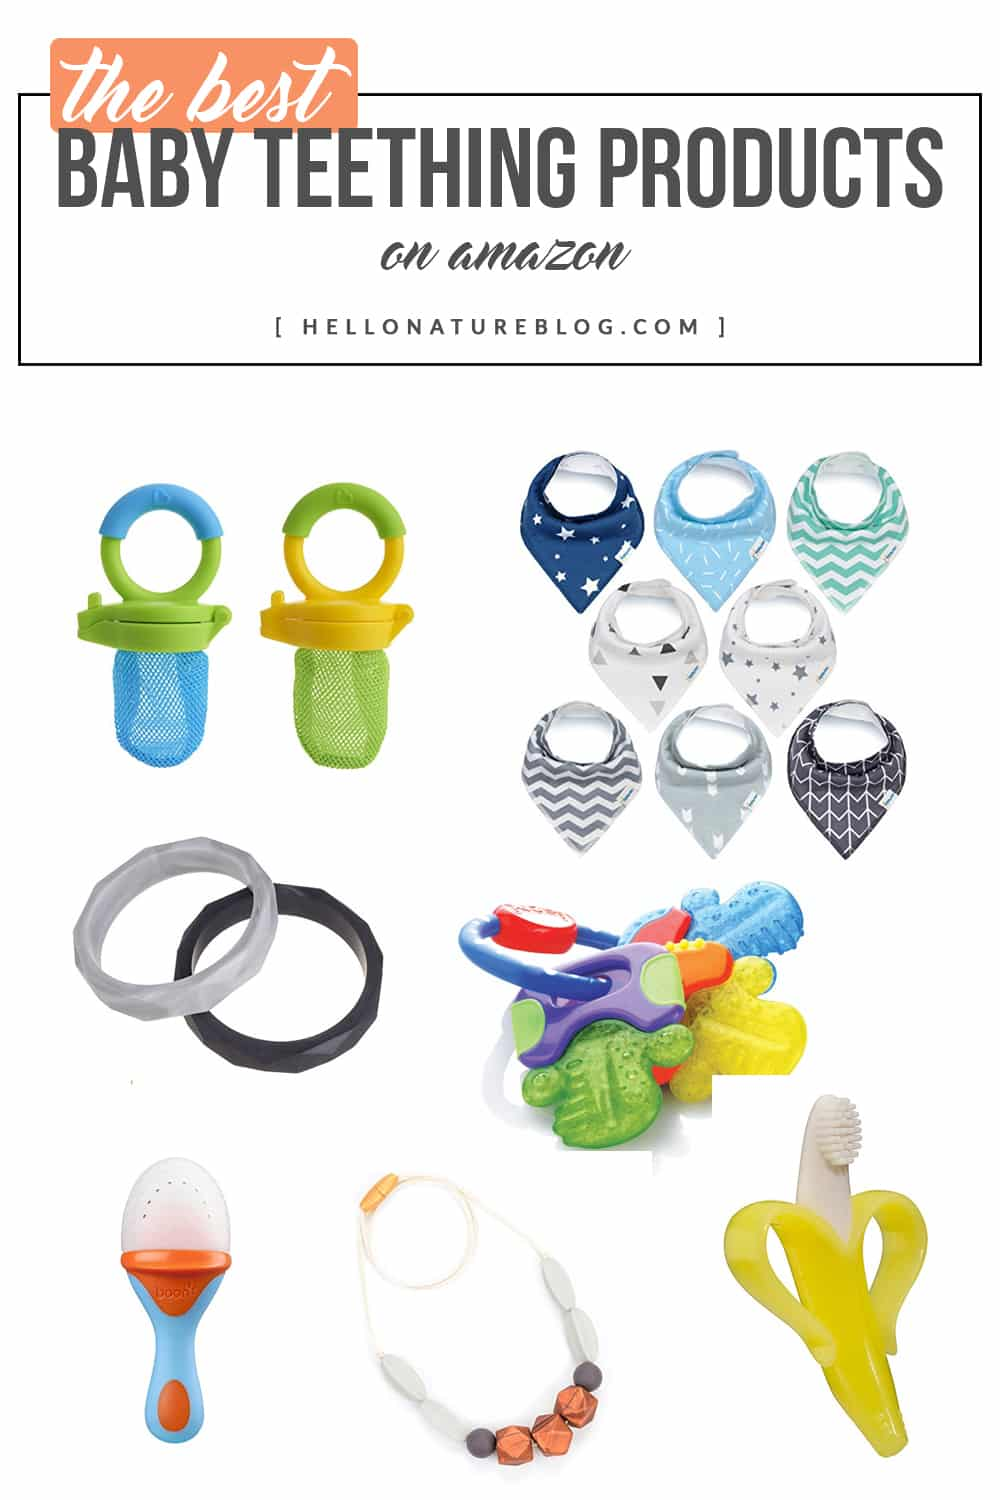 Best Baby Teething Products on Amazon